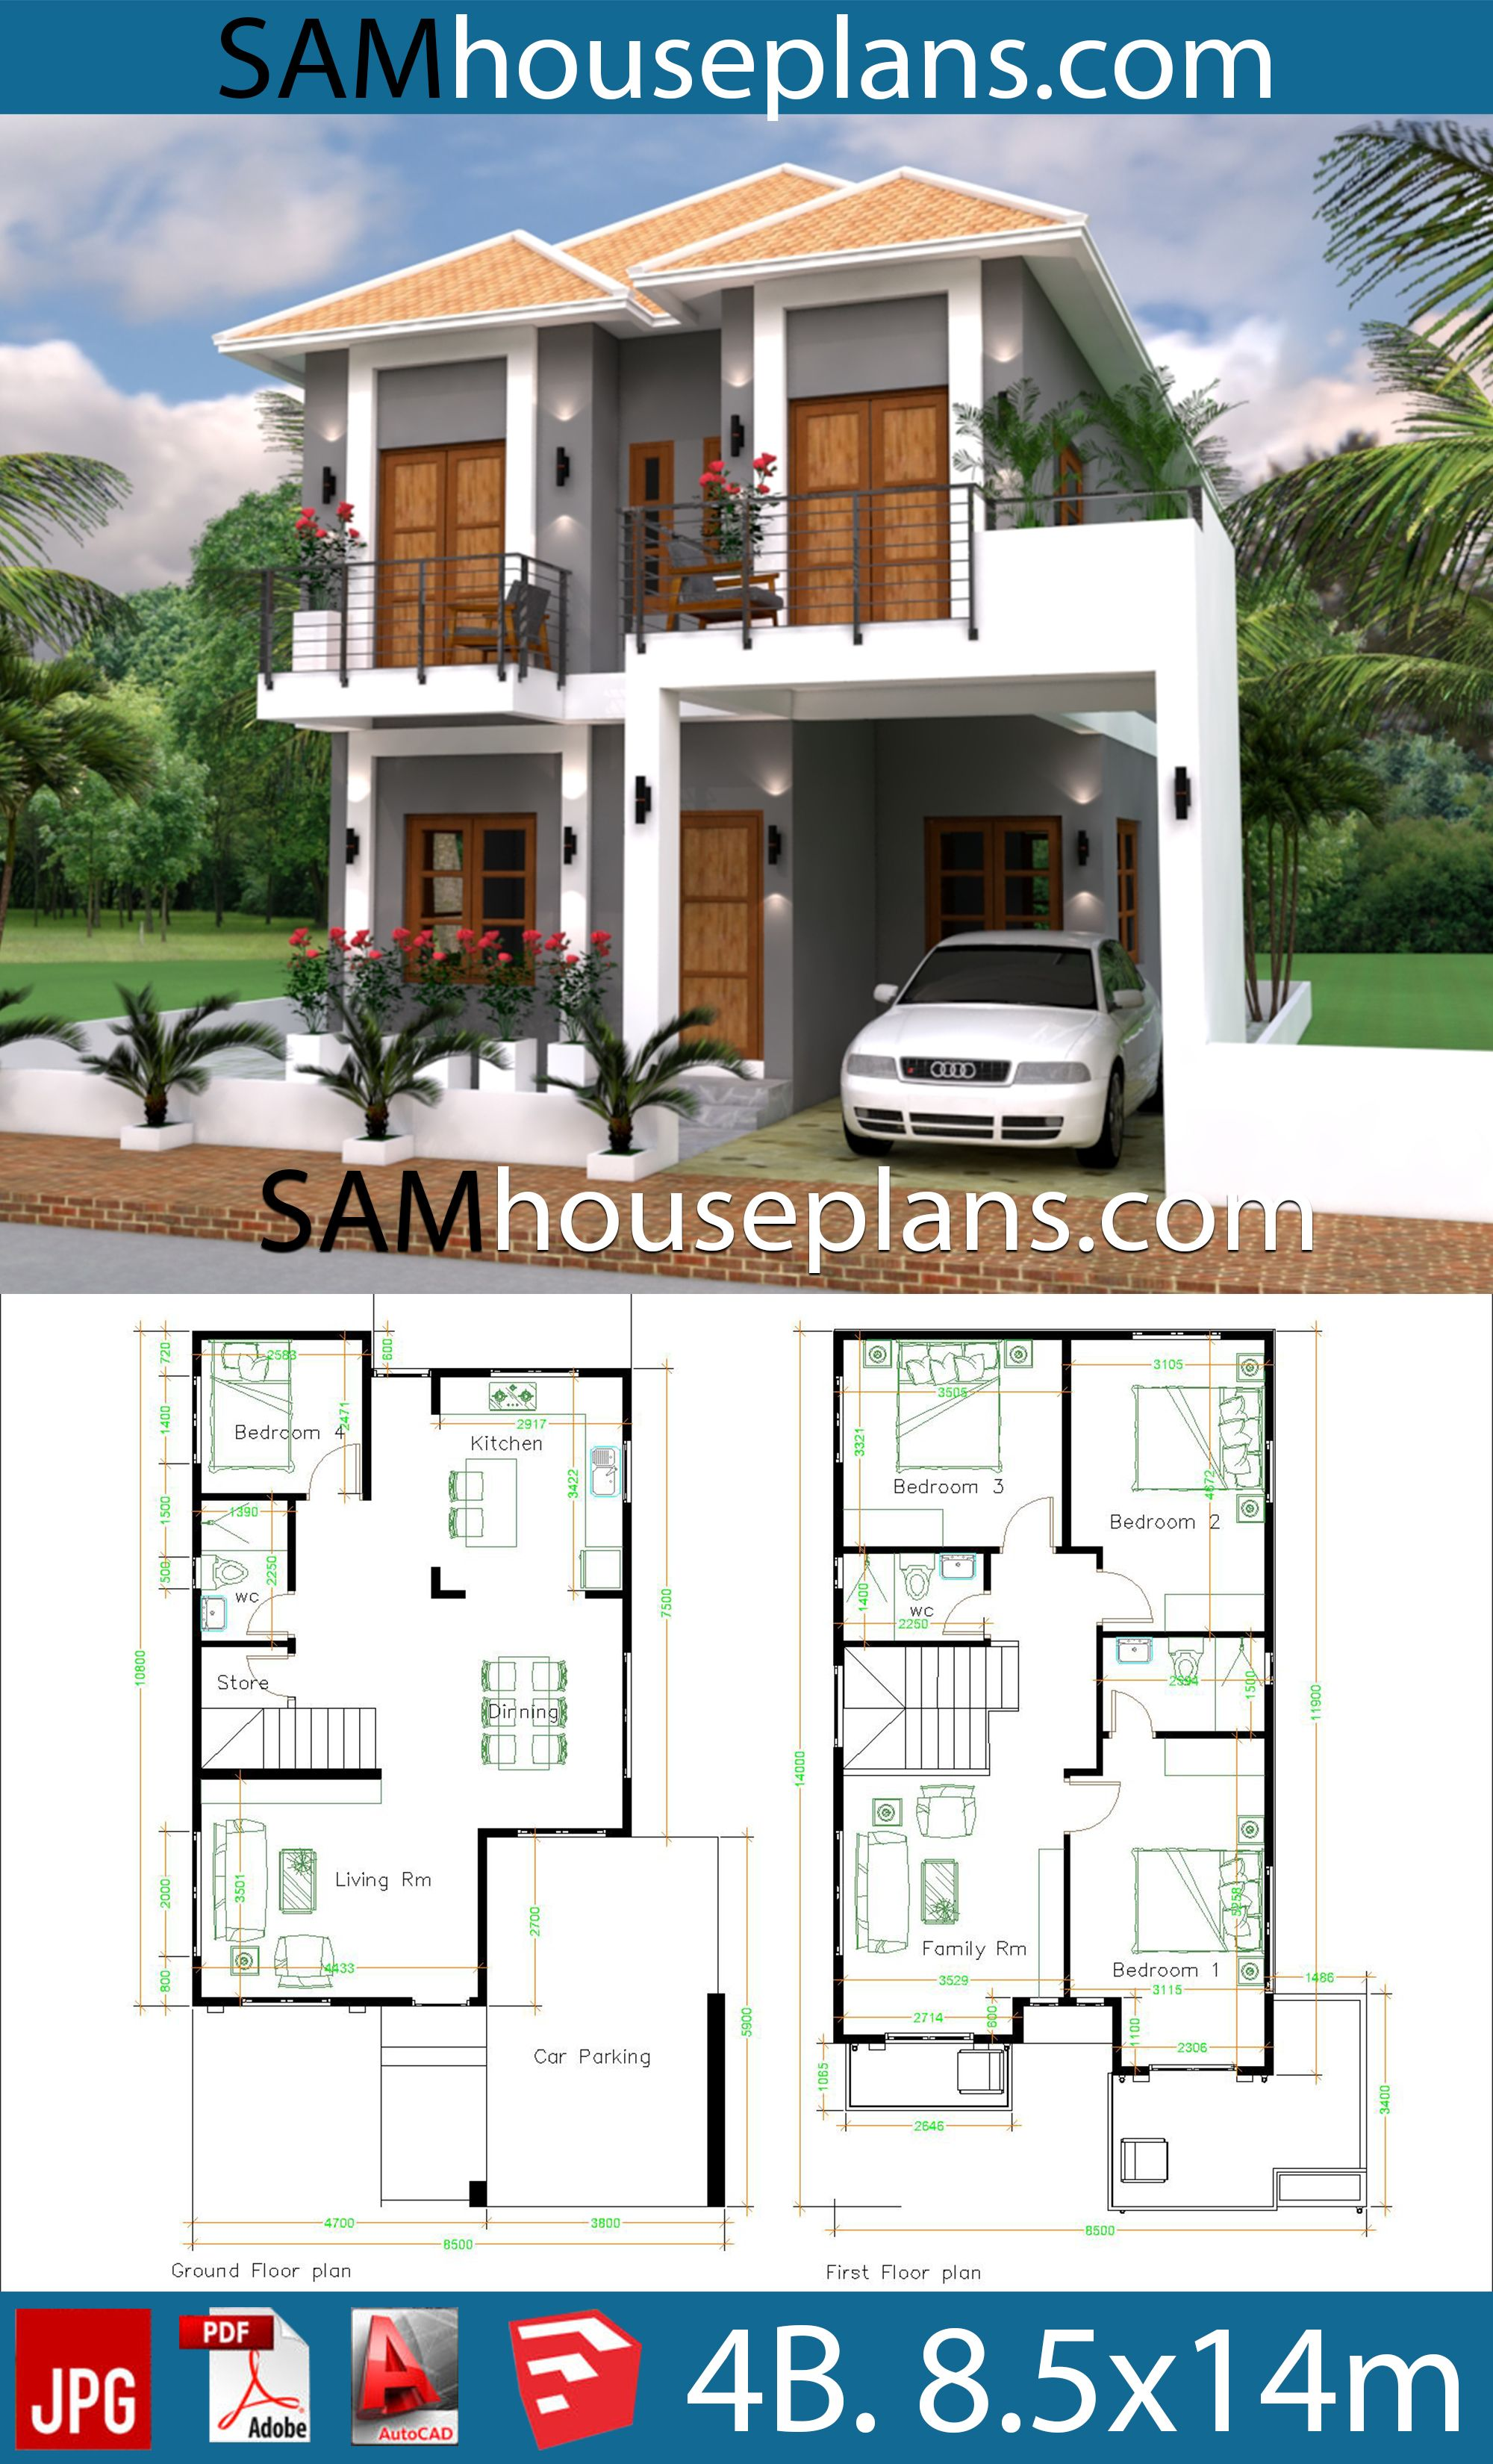 House Plans 8 5x14 With 4 Bedrooms House Plans Free Downloads House Layout Plans Two Storey House Plans Architectural Design House Plans